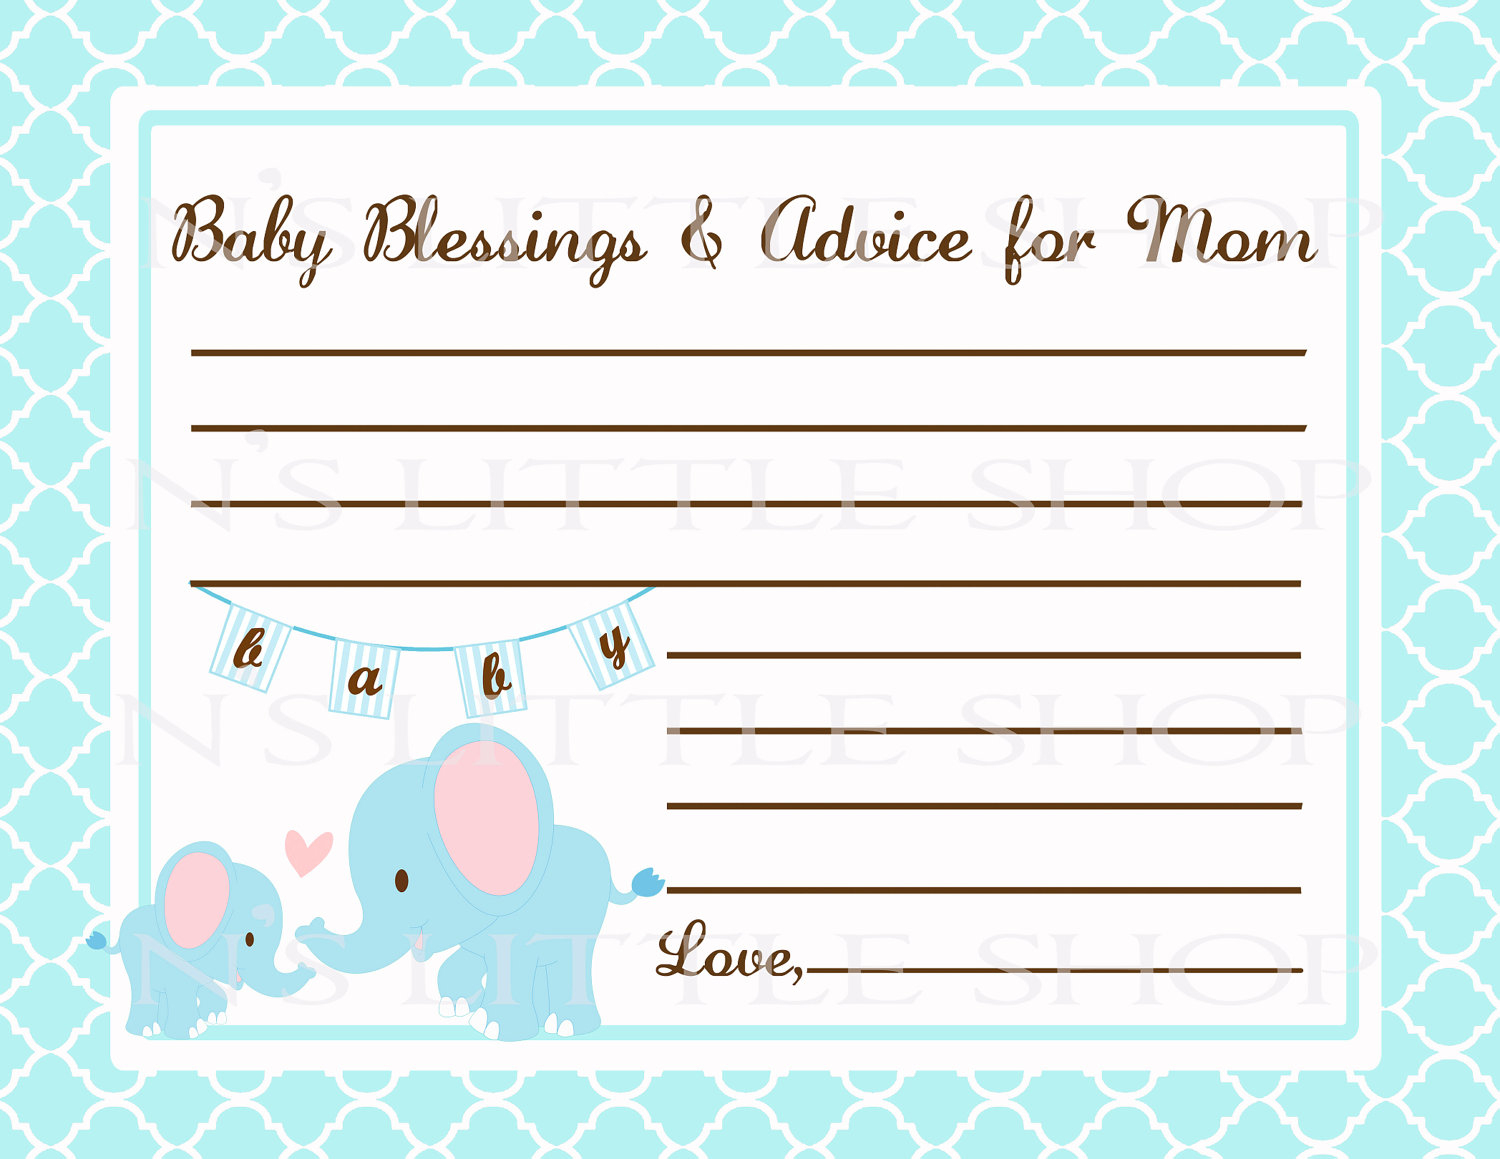 Editable Free Printable Baby Registry Cards To Baby Shower Welcome - Free Printable Baby Cards Templates